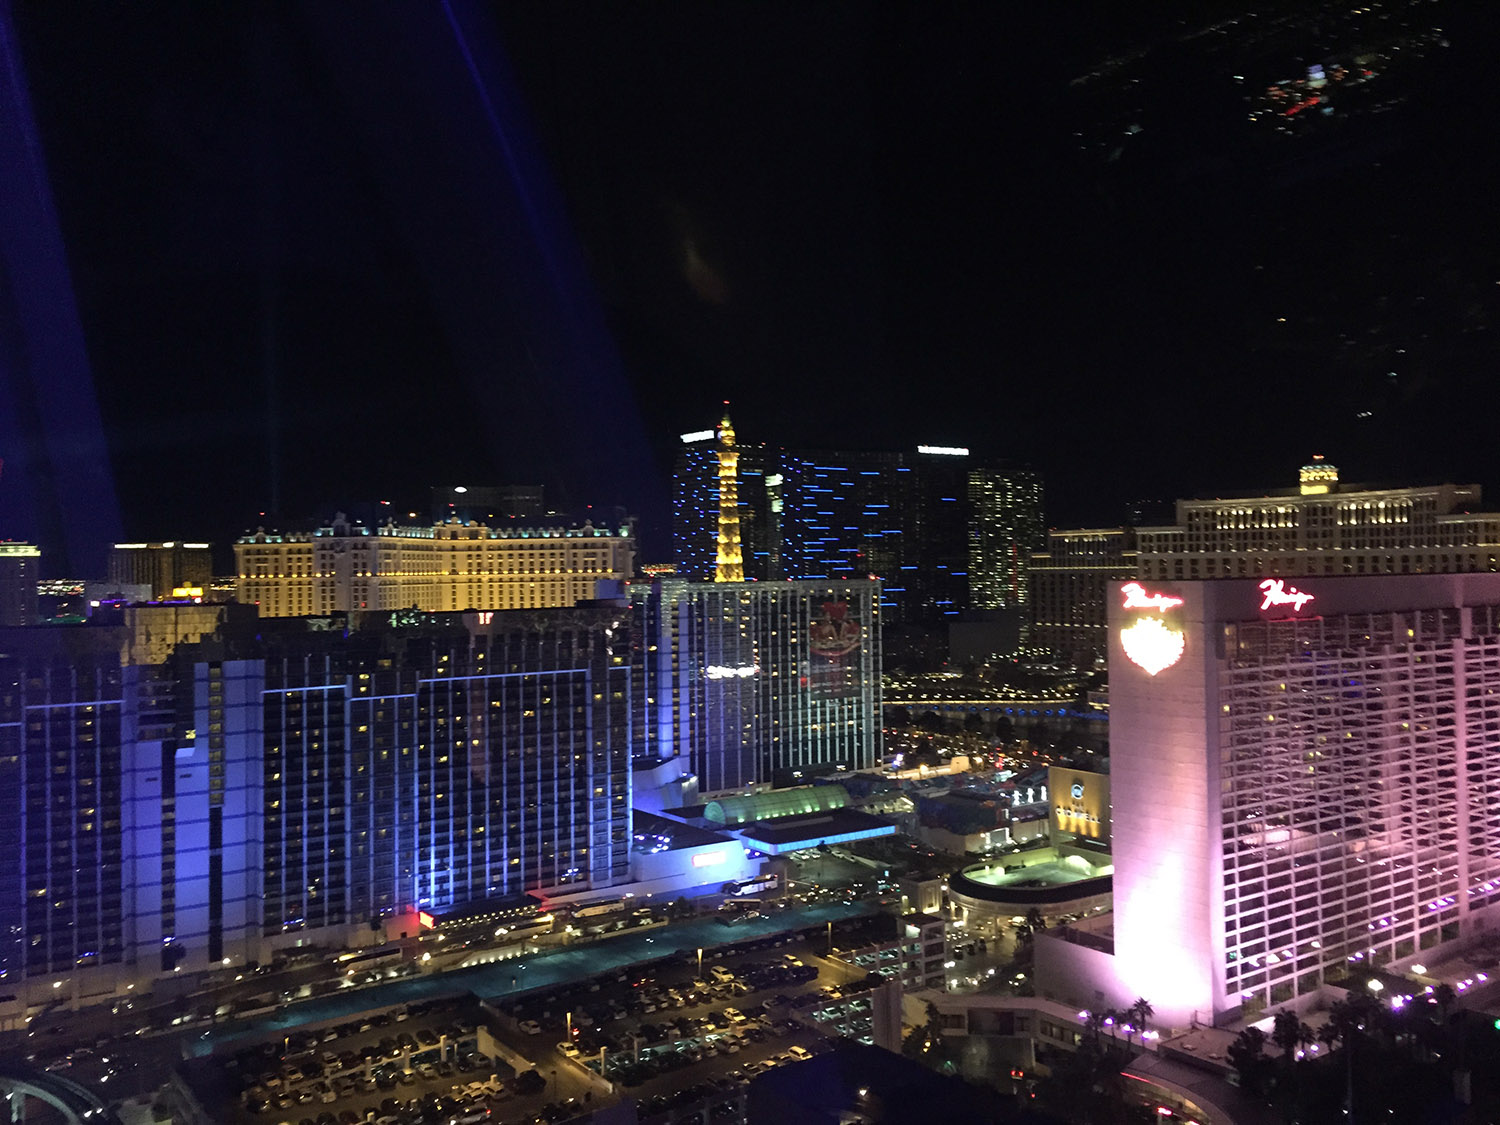 View of Las Vegas from the High Roller